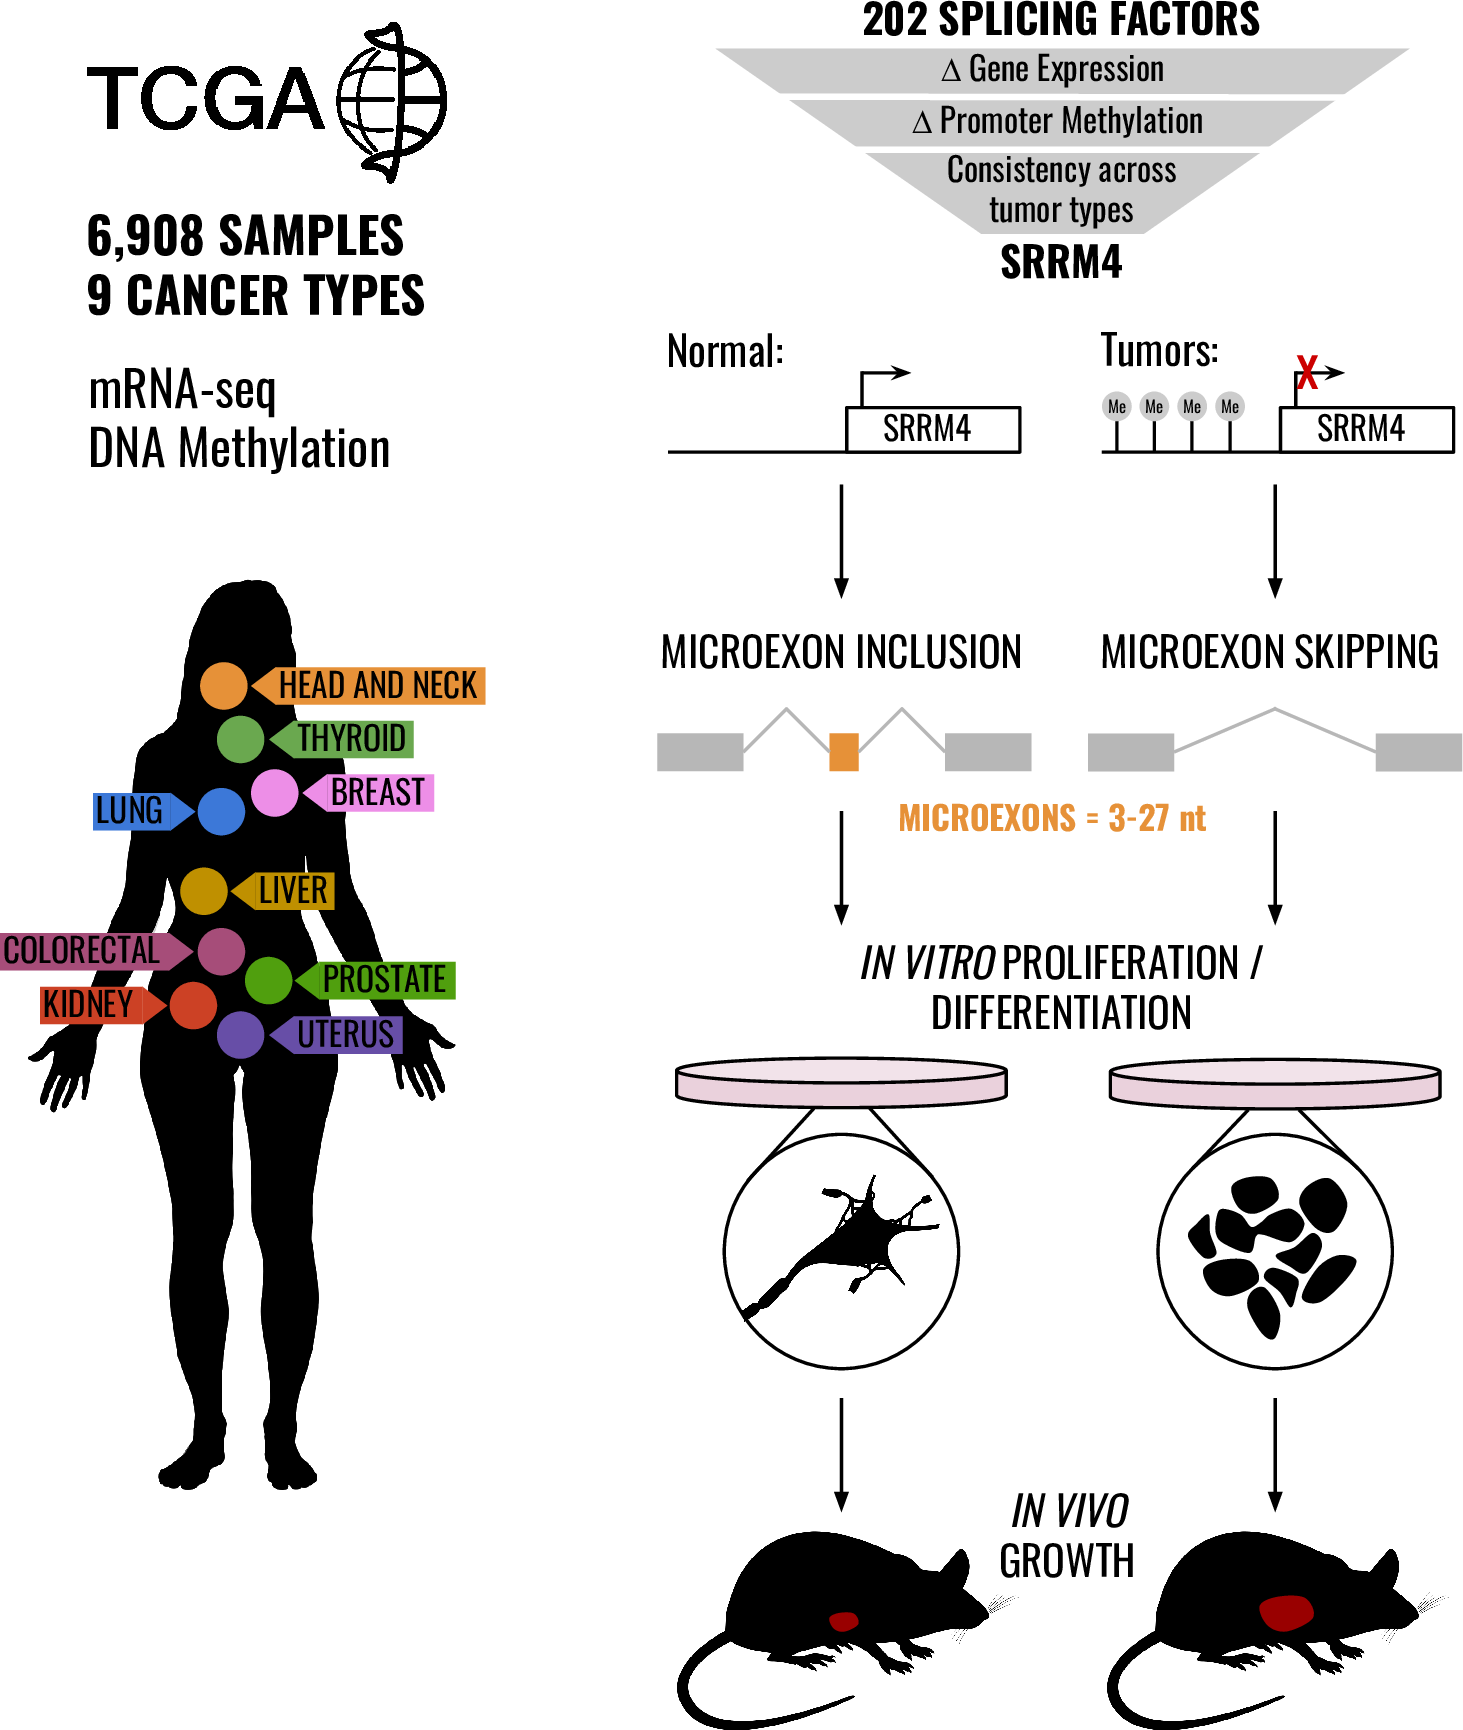 Silencing of SRRM4 suppresses microexon inclusion and promotes tumor growth across cancers